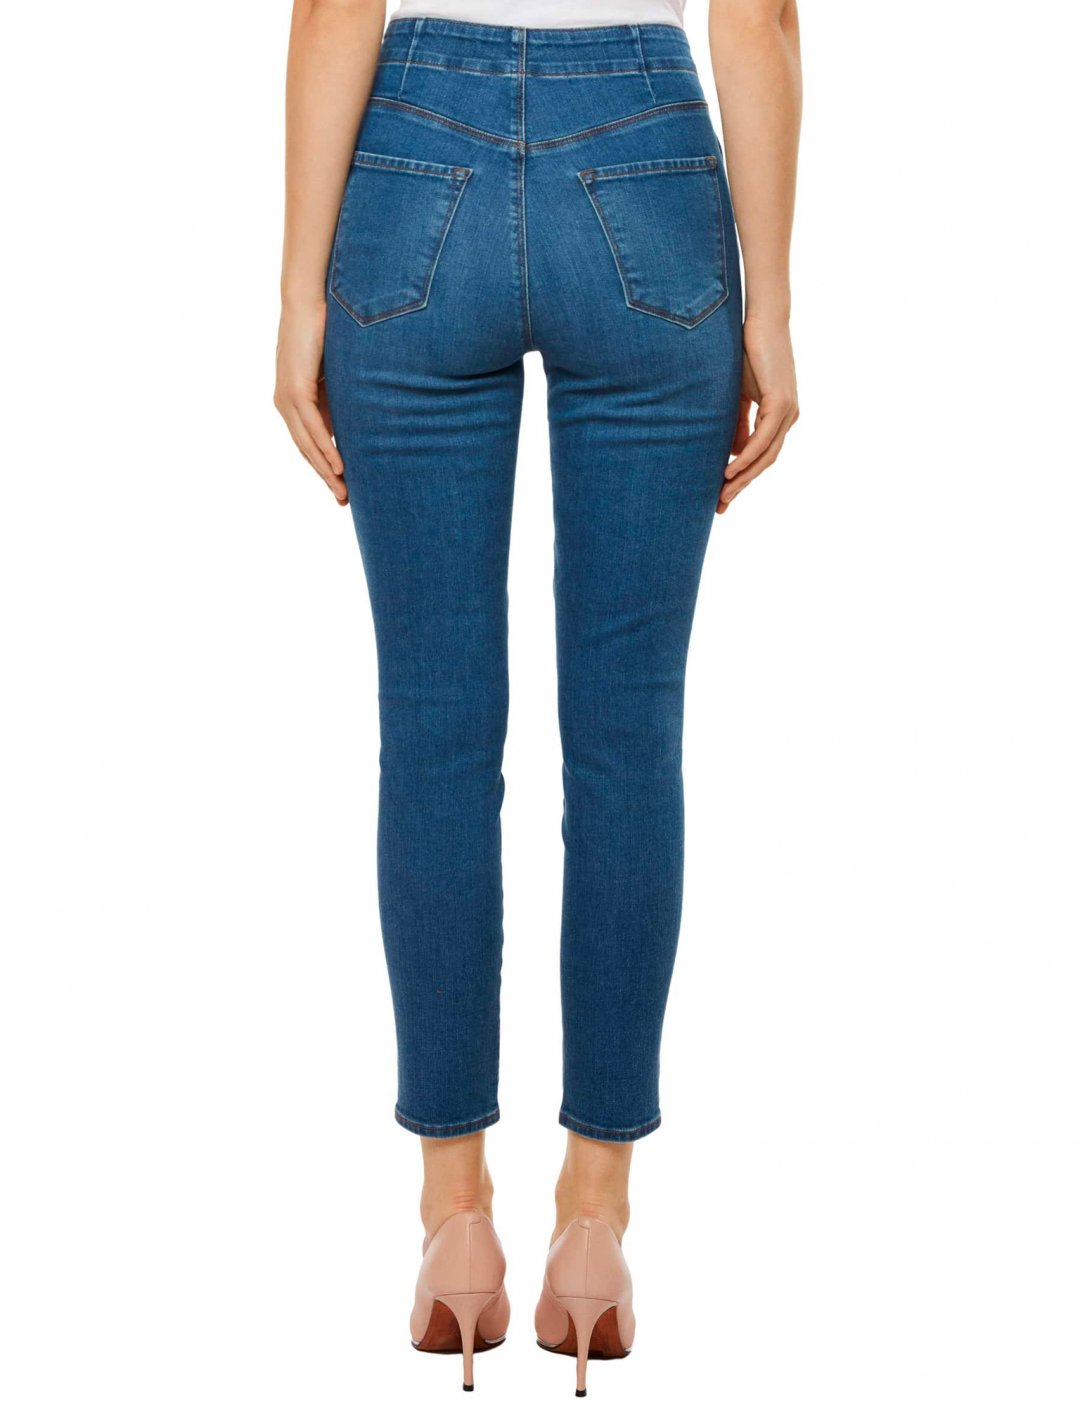 "Jennifer Lopez' Jeans {""id"":5,""product_section_id"":1,""name"":""Clothing"",""order"":5} J Brand"